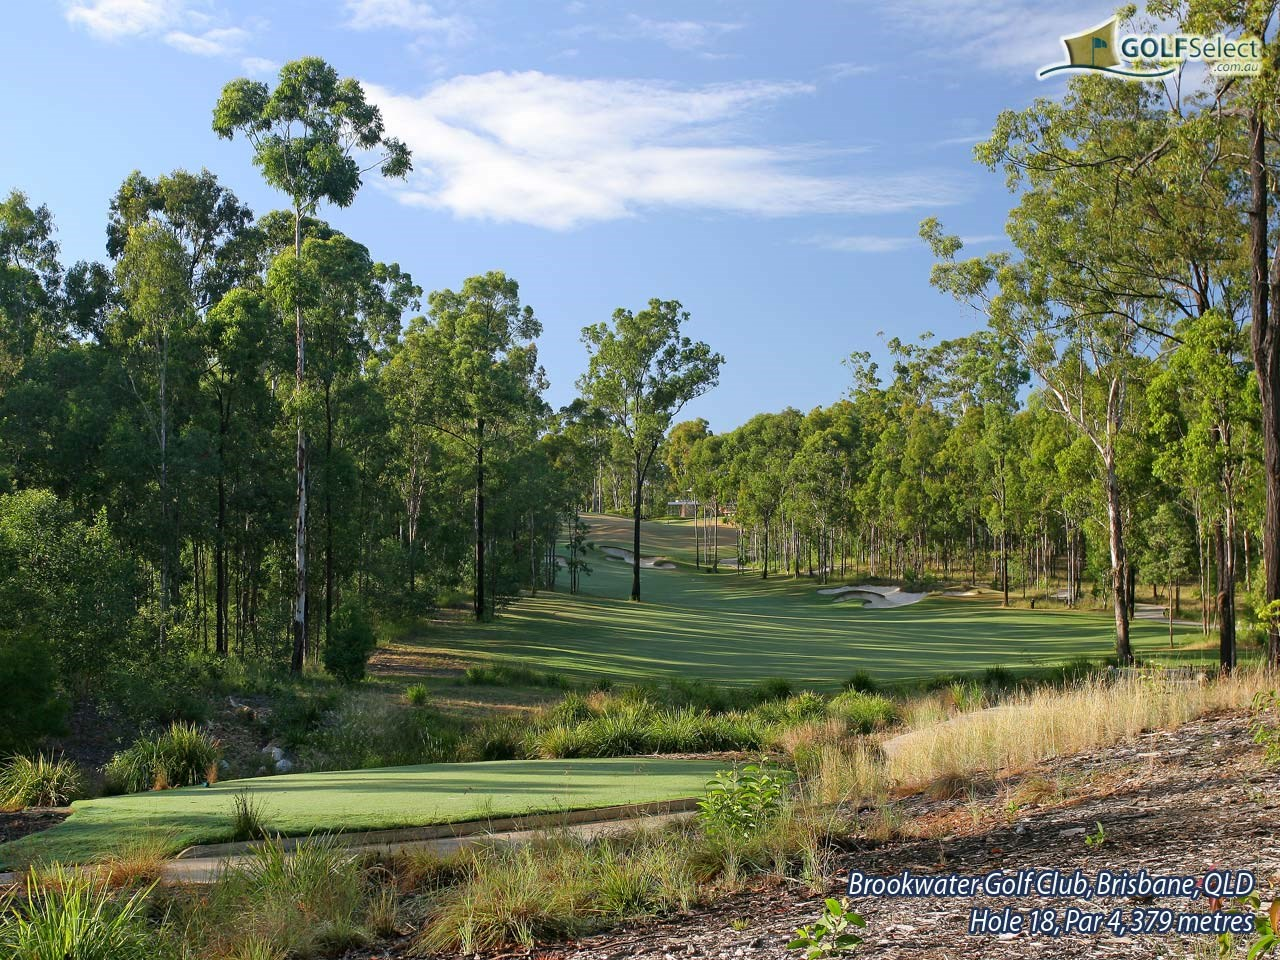 Brookwater Golf & Country Club Hole 18, Par 4, 378 metres